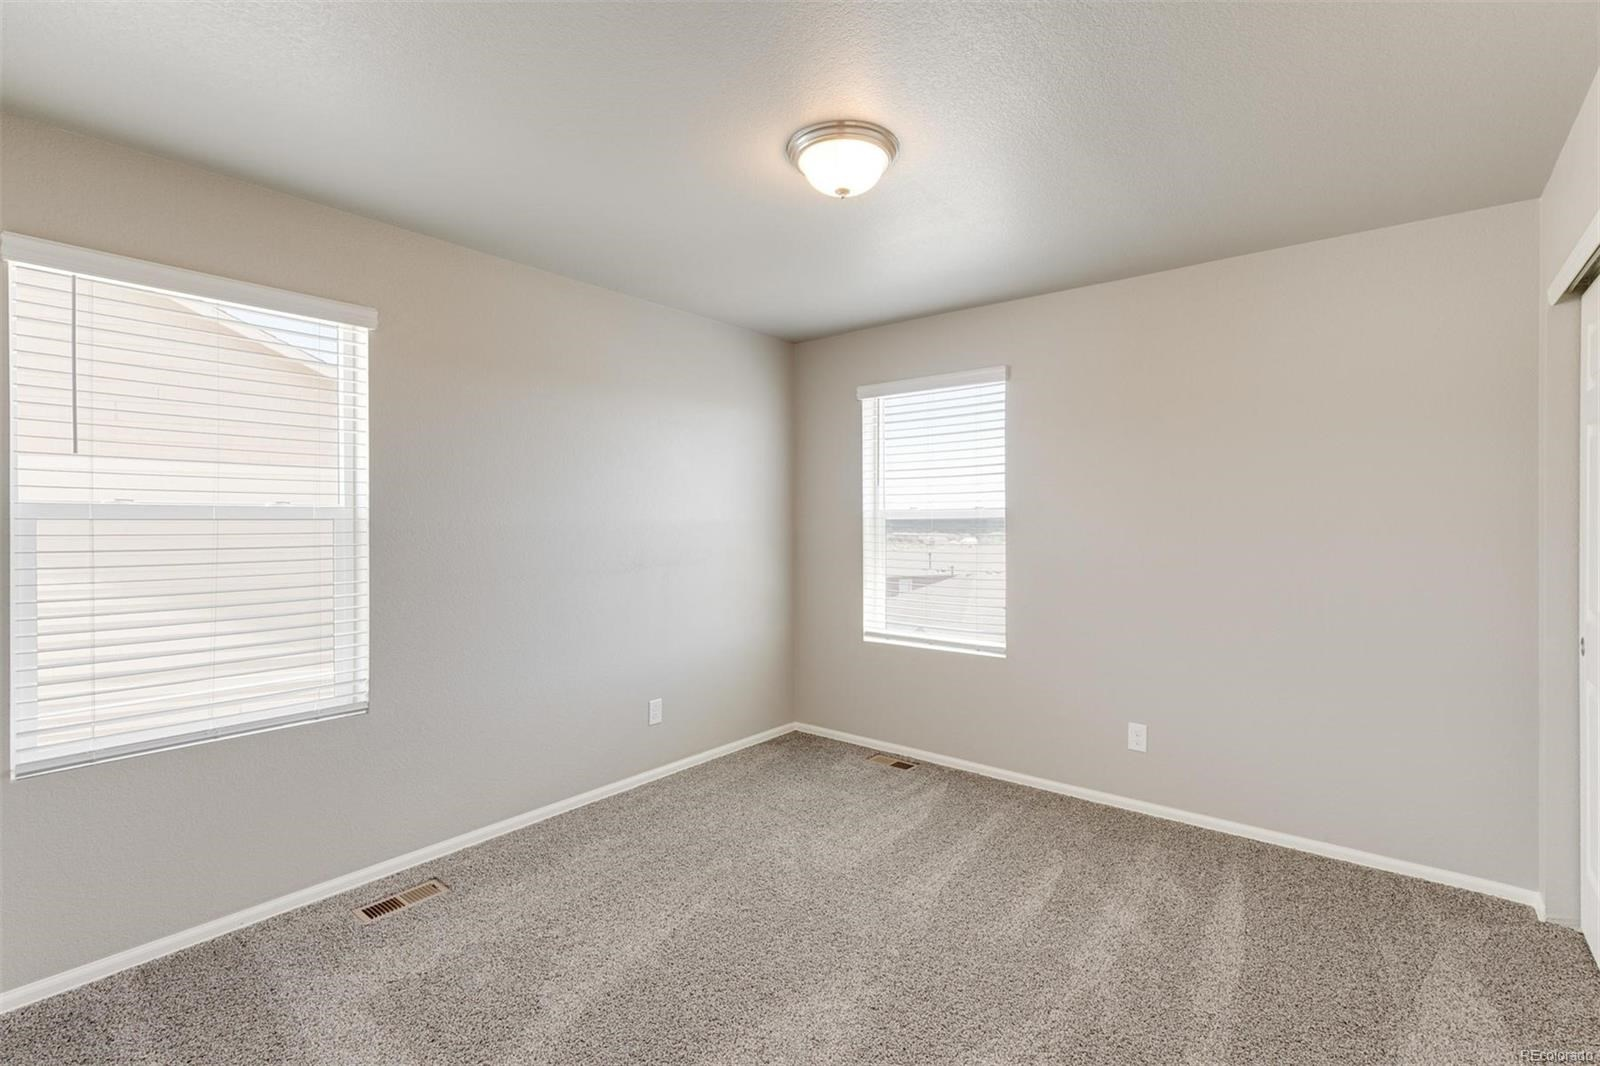 MLS# 3645271 - 23 - 6915 Grainery Court, Timnath, CO 80547